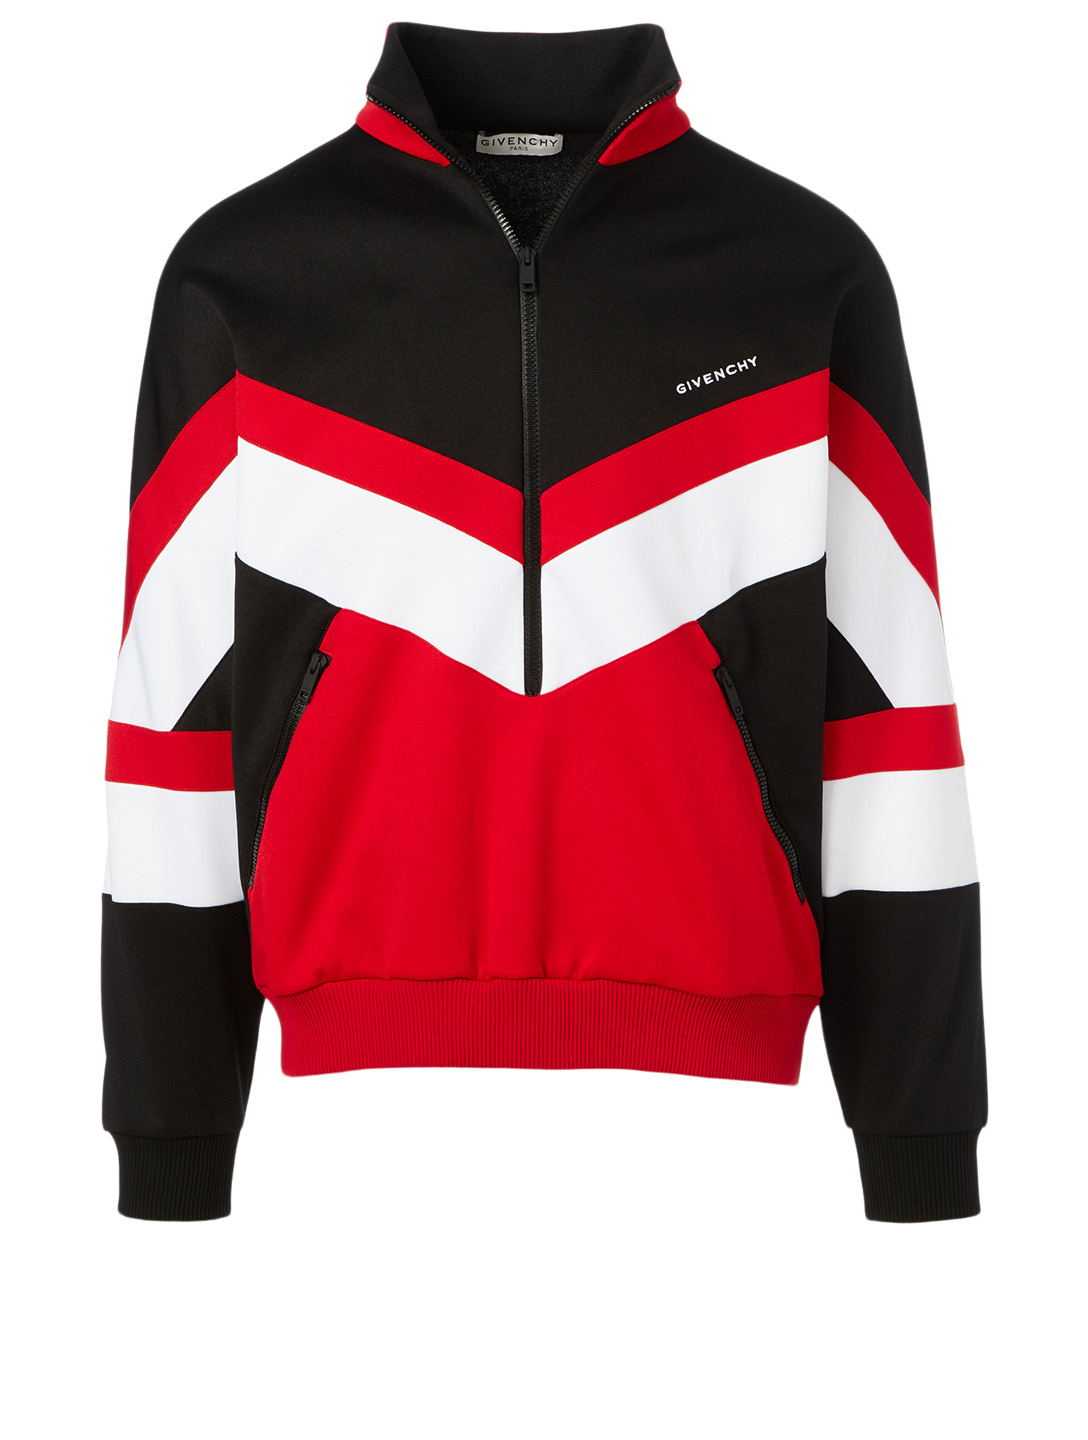 GIVENCHY Track Jacket With Contrast Yoke Men's Black